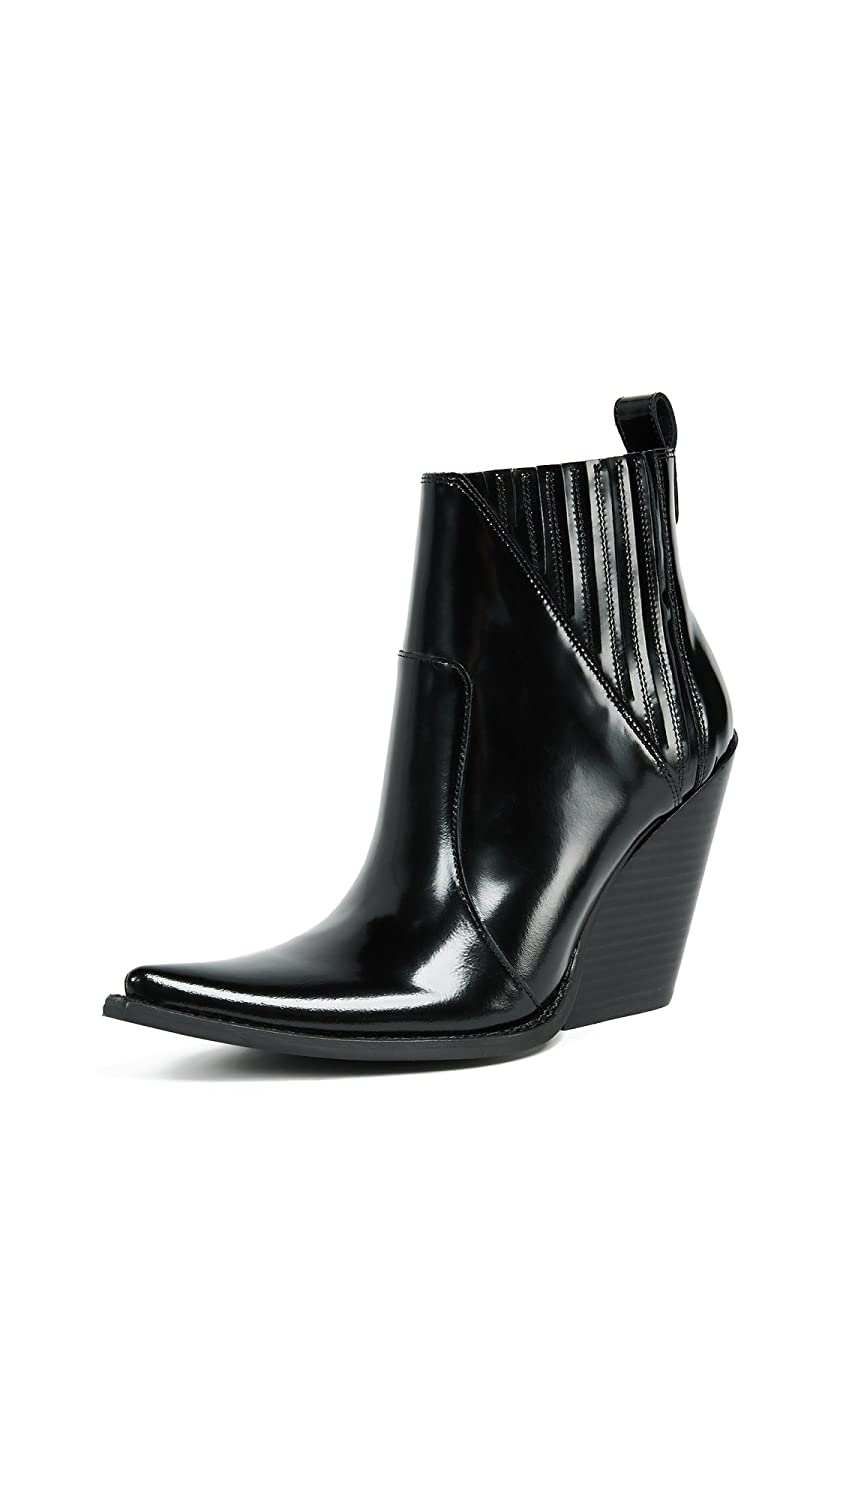 Jeffrey Campbell Women's Homage Point Toe Booties B077BY16FH 6 B(M) US|Black Box